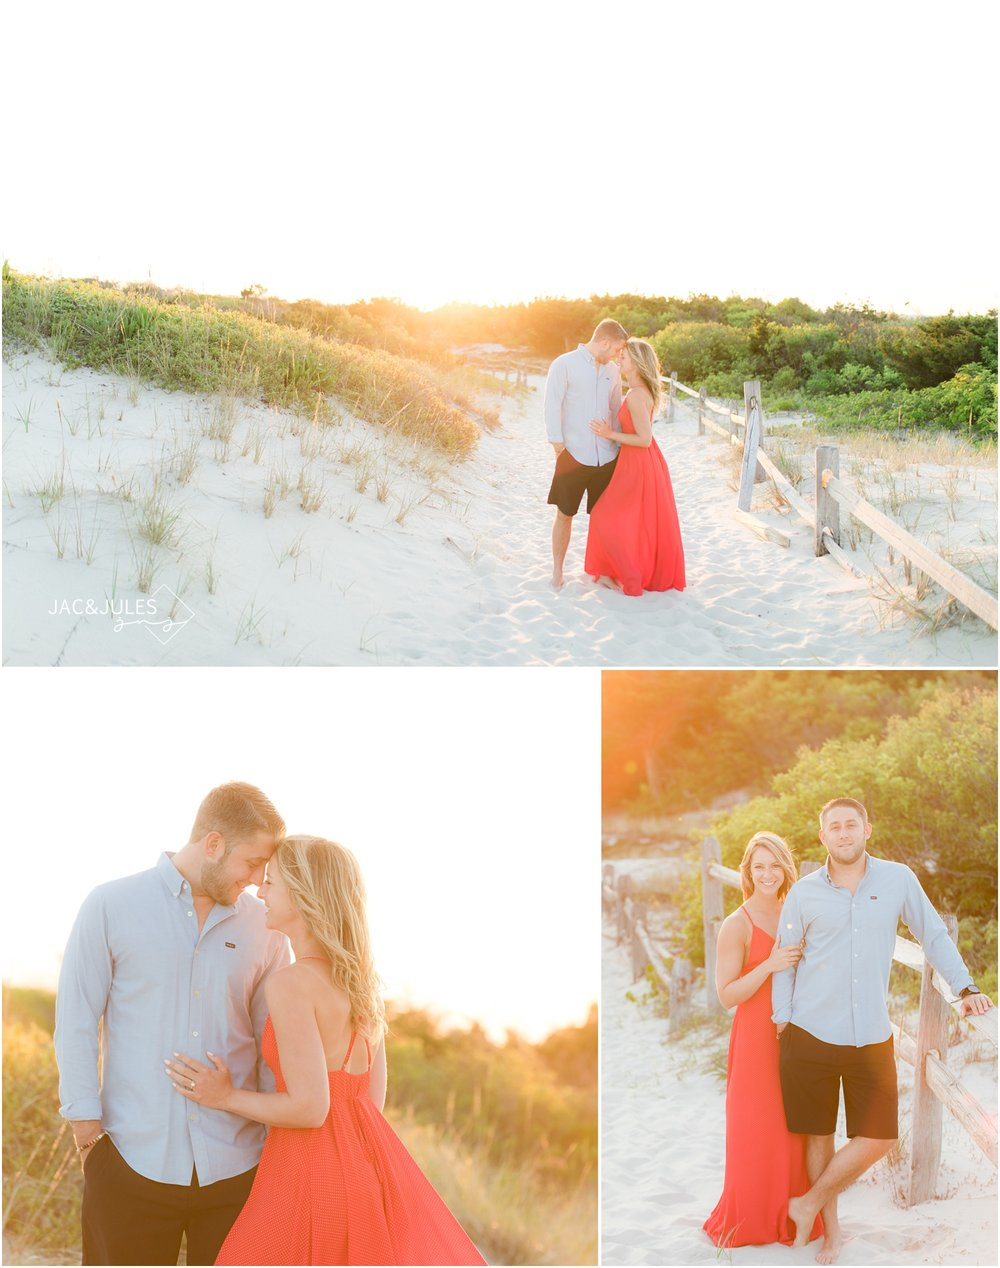 Dreamy and romantic engagement photos on the beach at sunset at Island Beach State Park in Seaside Park, NJ.